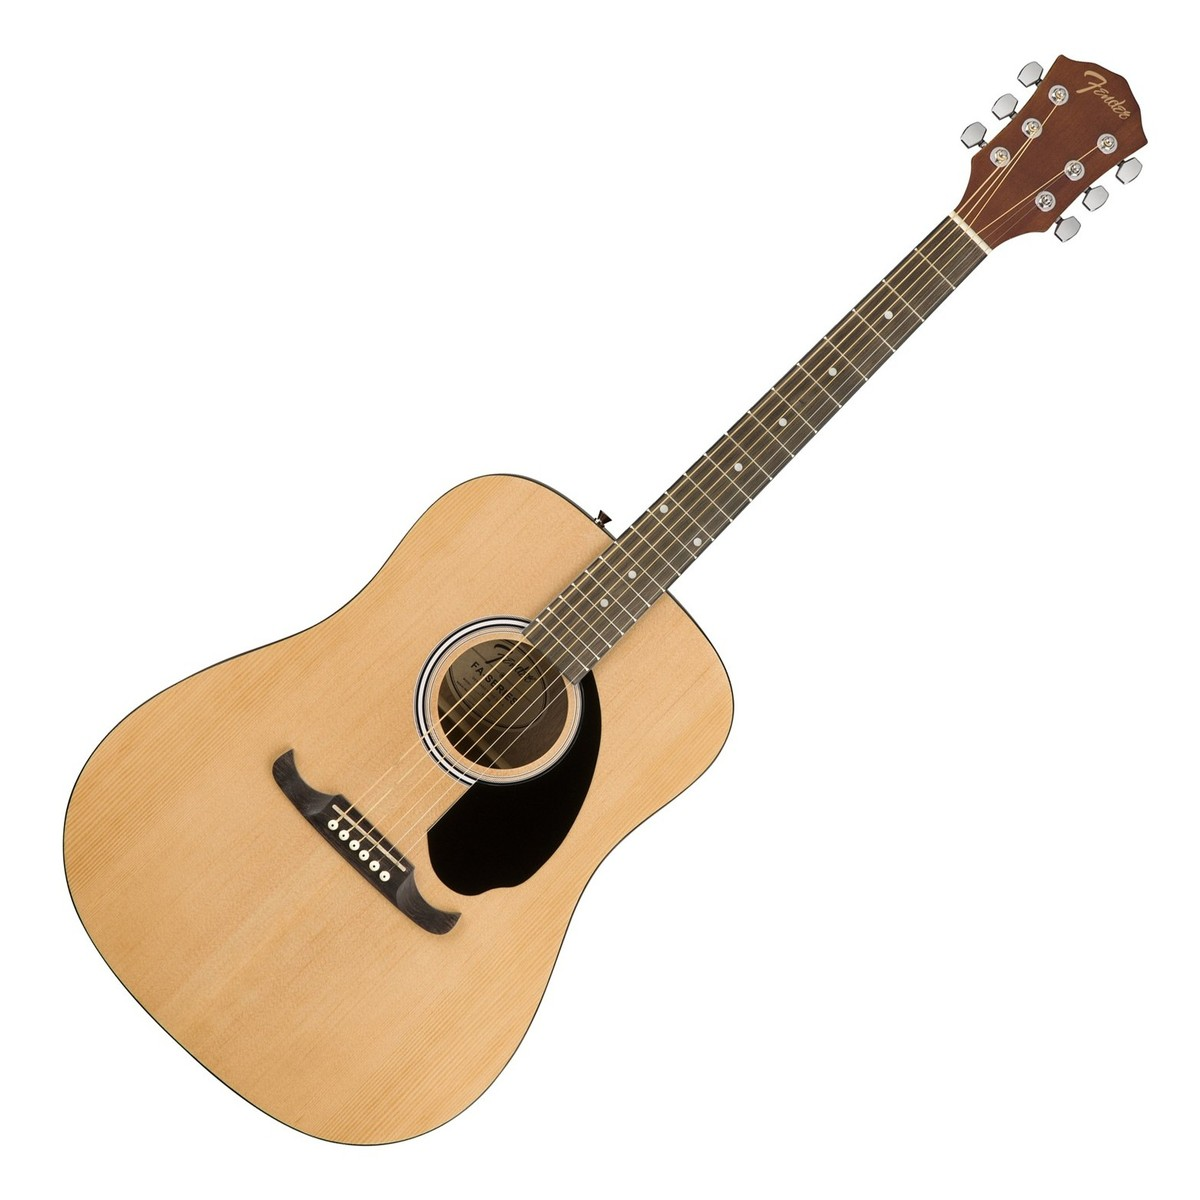 Fender FA-125 Dreadnought Acoustic, Natural Акустические гитары